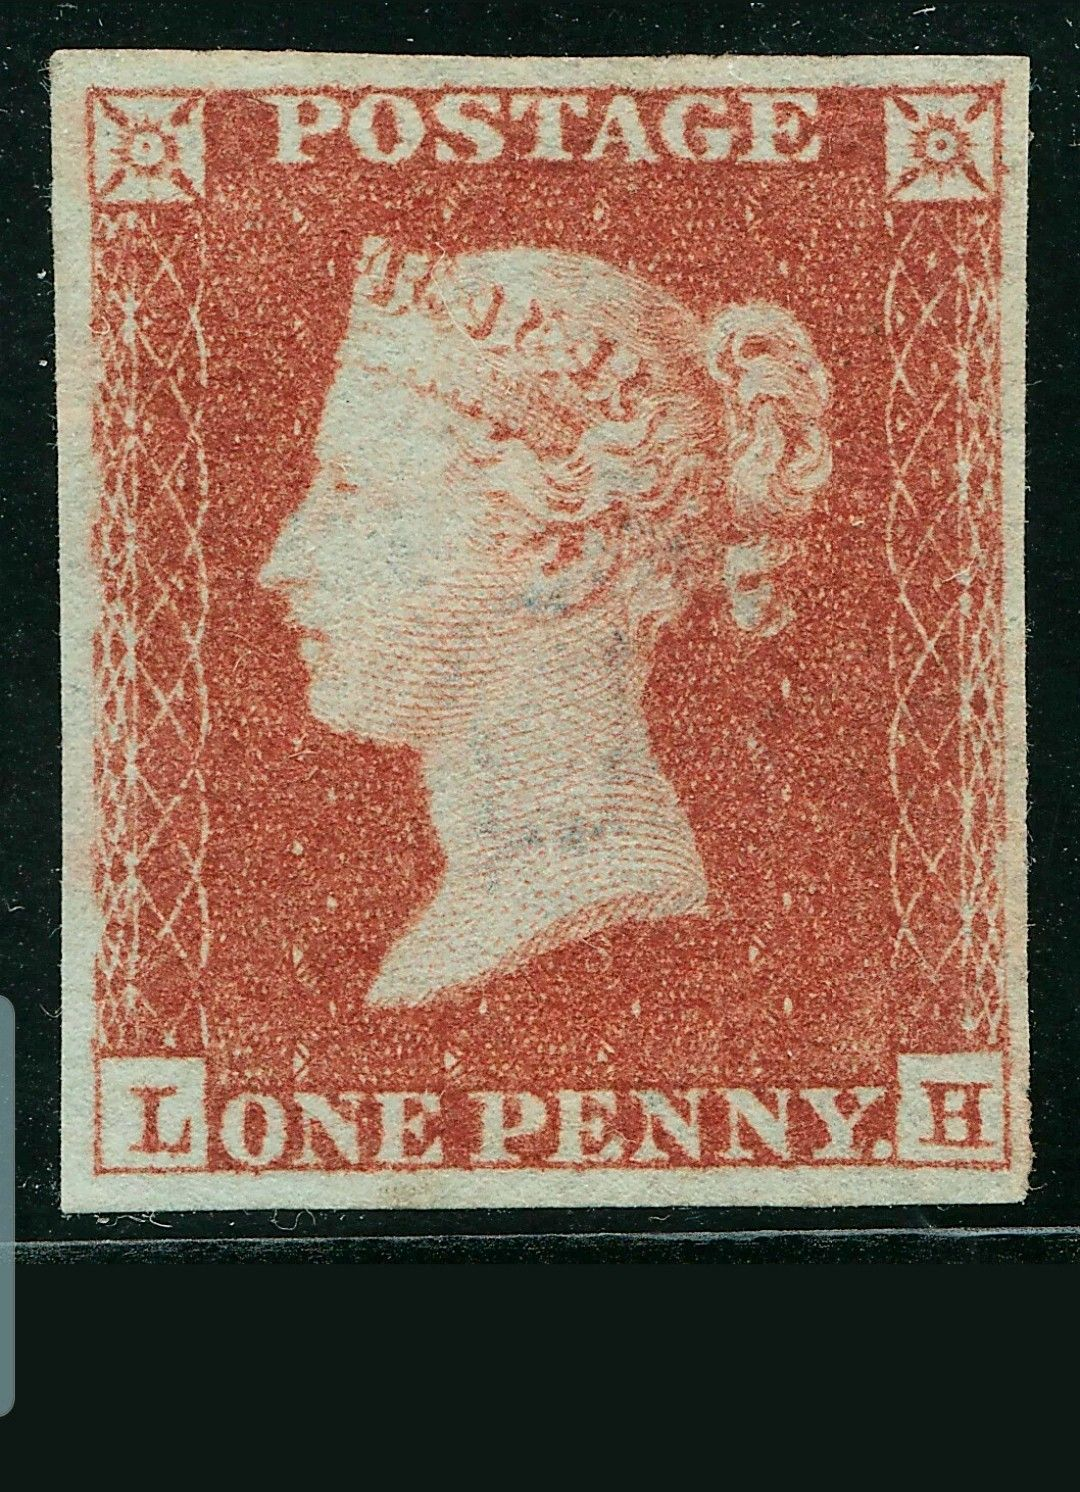 GB : 1853 penny red 1853 spec b2 plt 162 mint mng (With